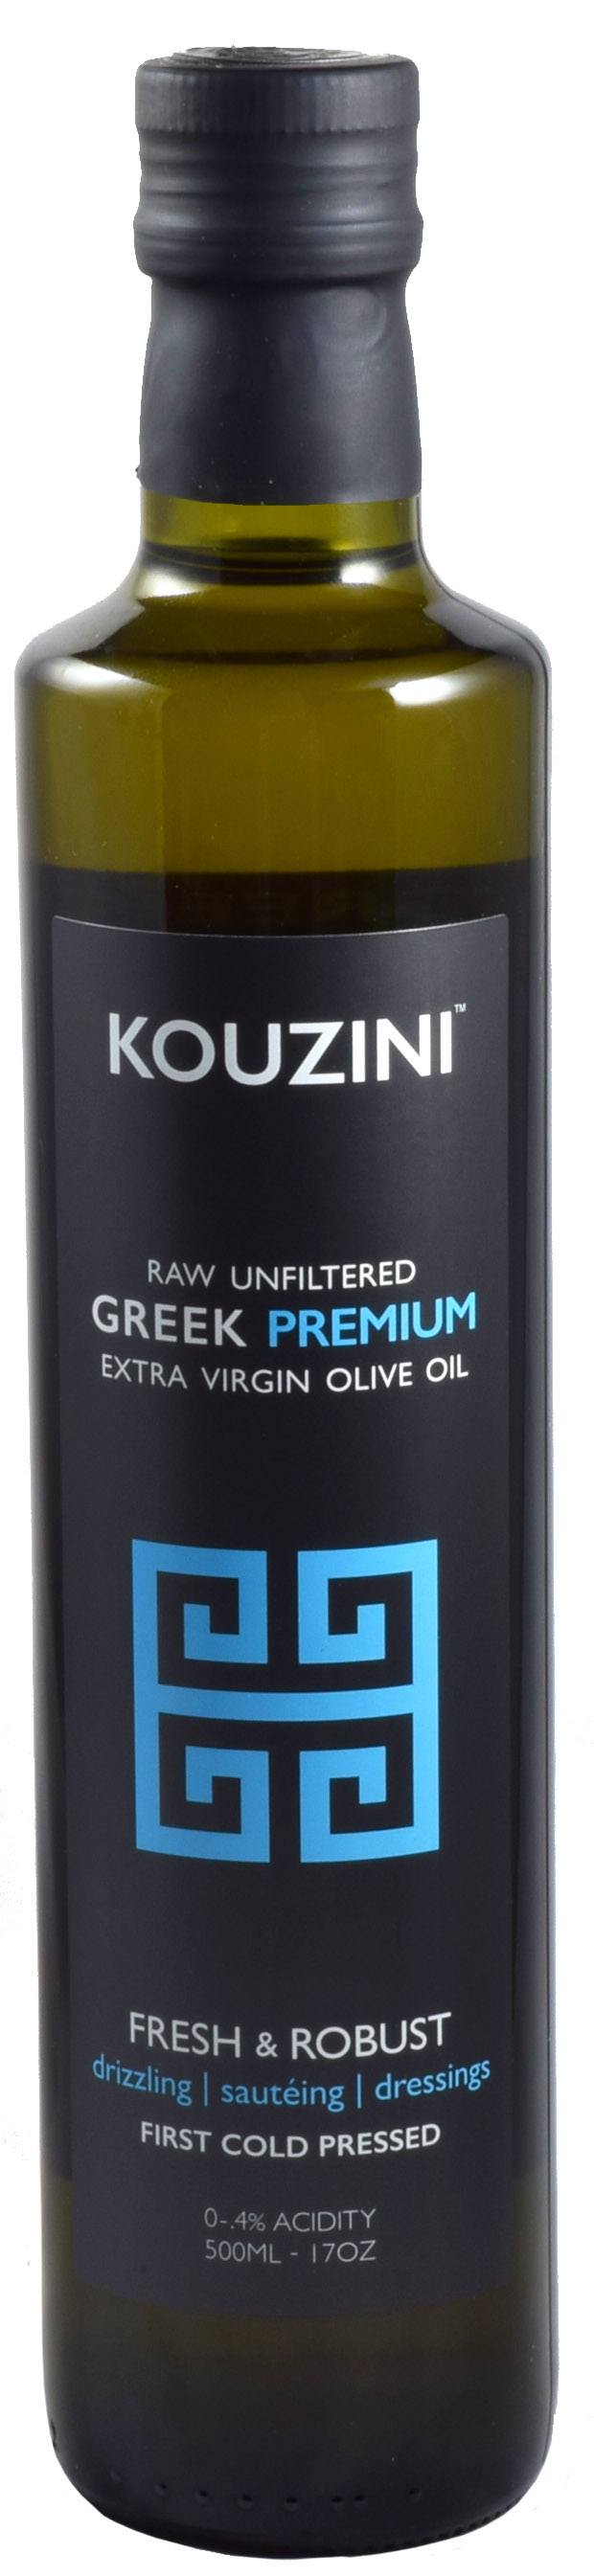 Ultra Premium Greek Raw Unfiltered Extra Virgin Olive Oil (Free shipping  with code